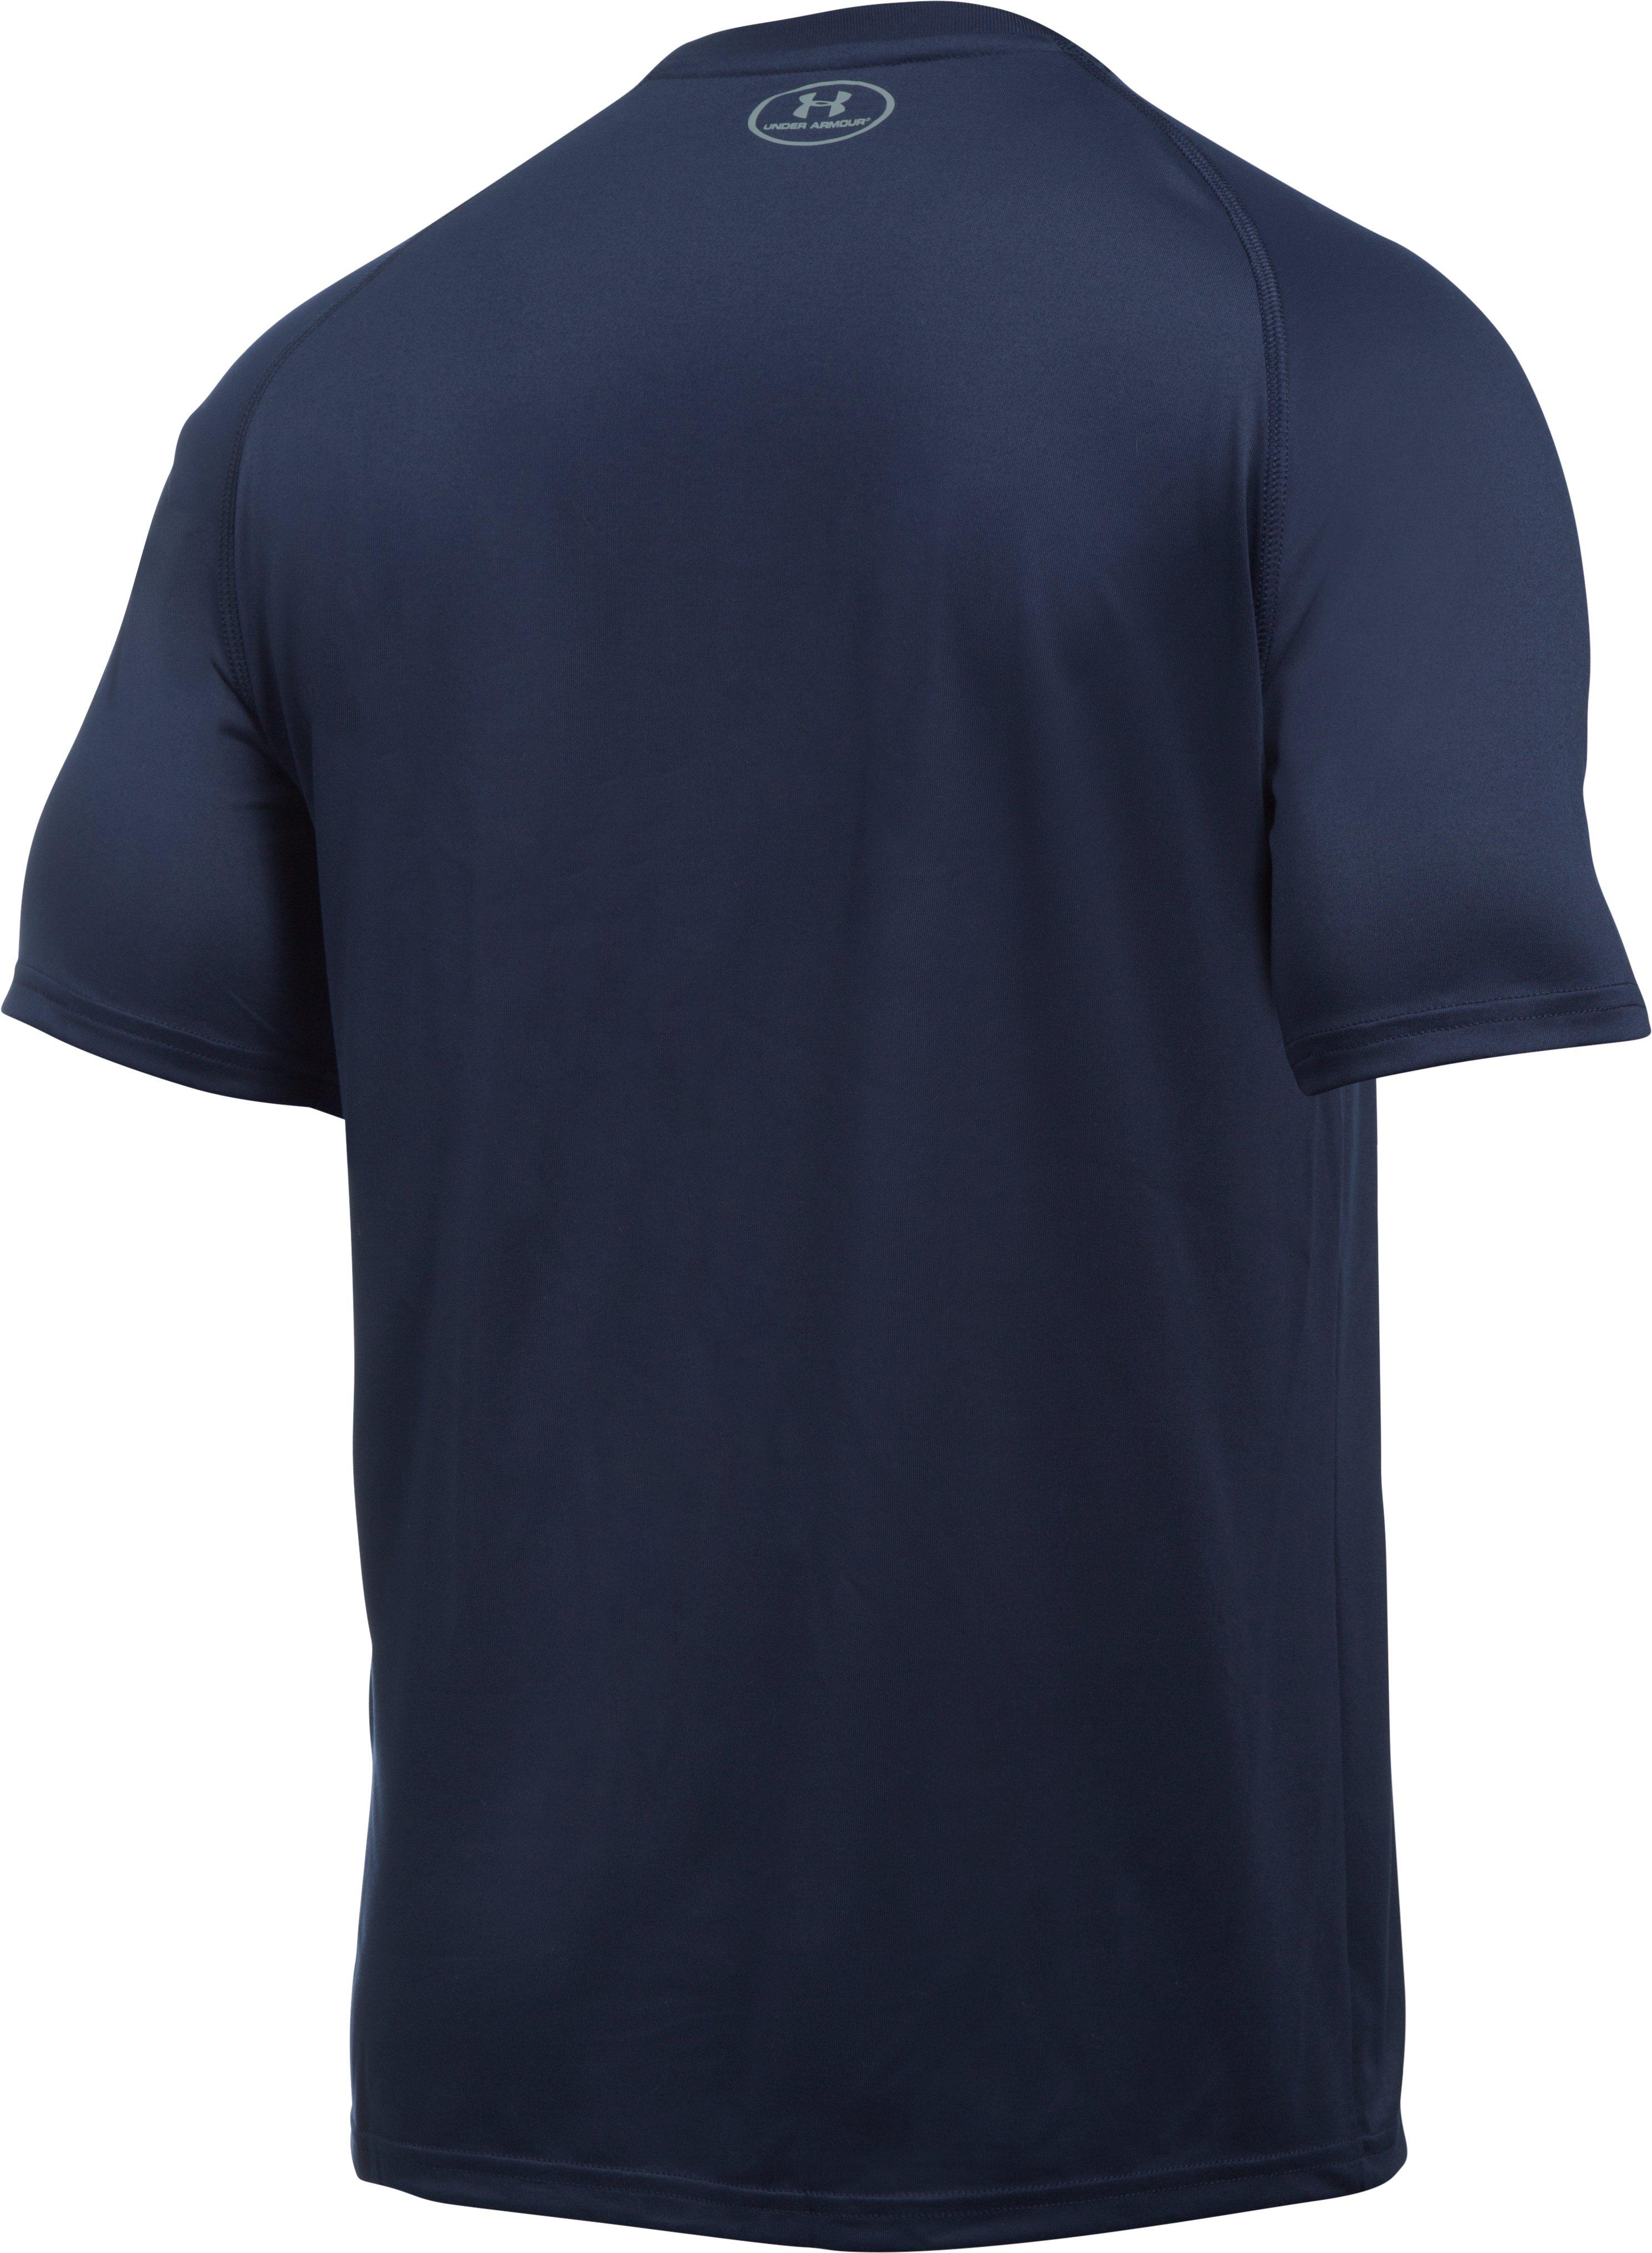 Men's Notre Dame UA Tech™ Team T-Shirt, Midnight Navy